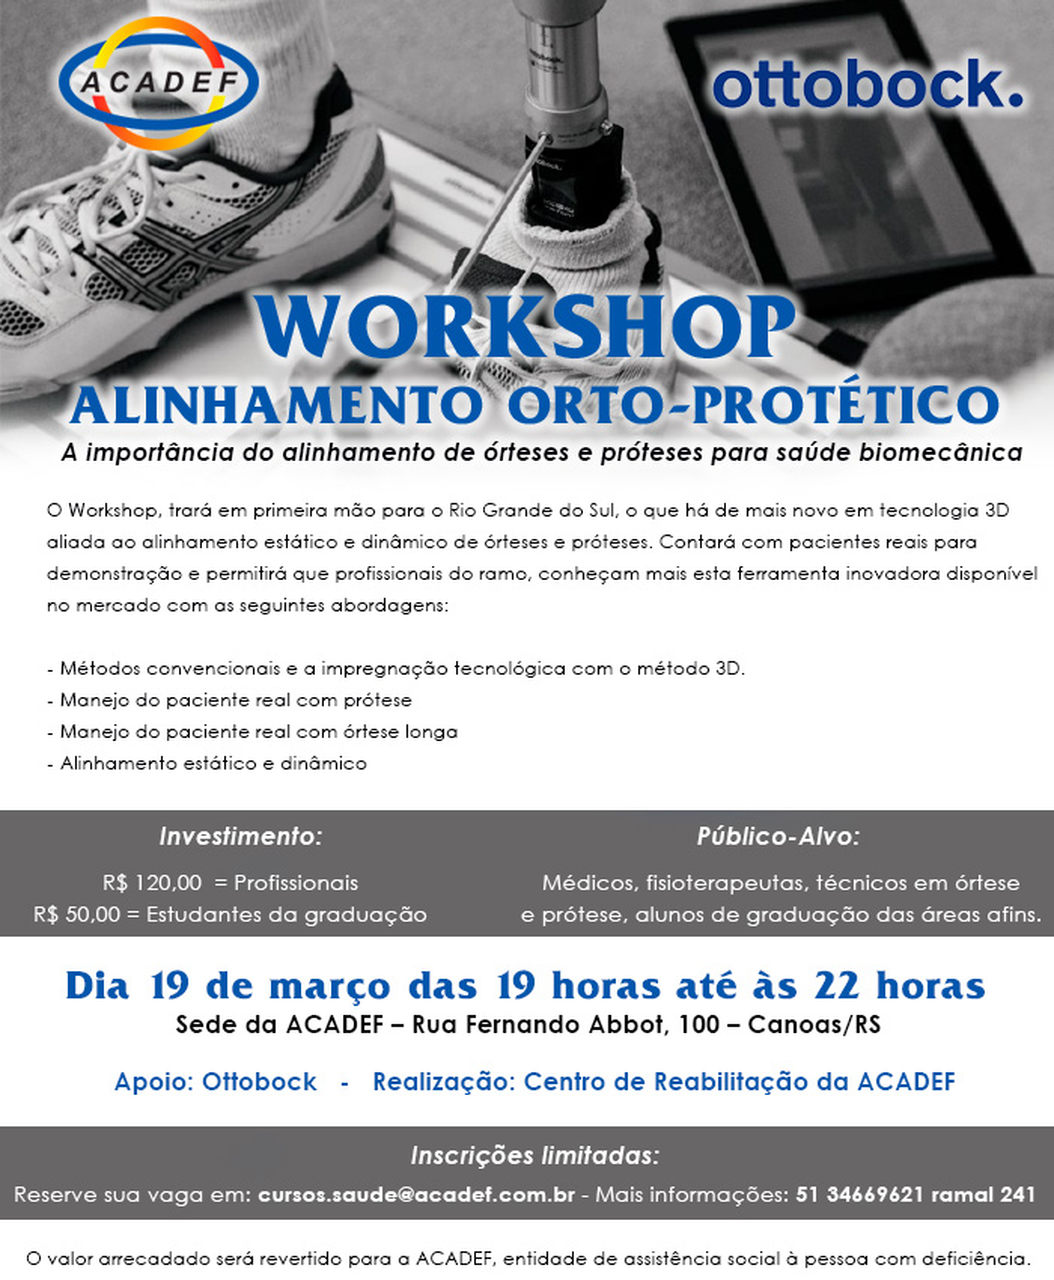 banner-workshop-ottobock_Easy-Resize_com_2.jpg